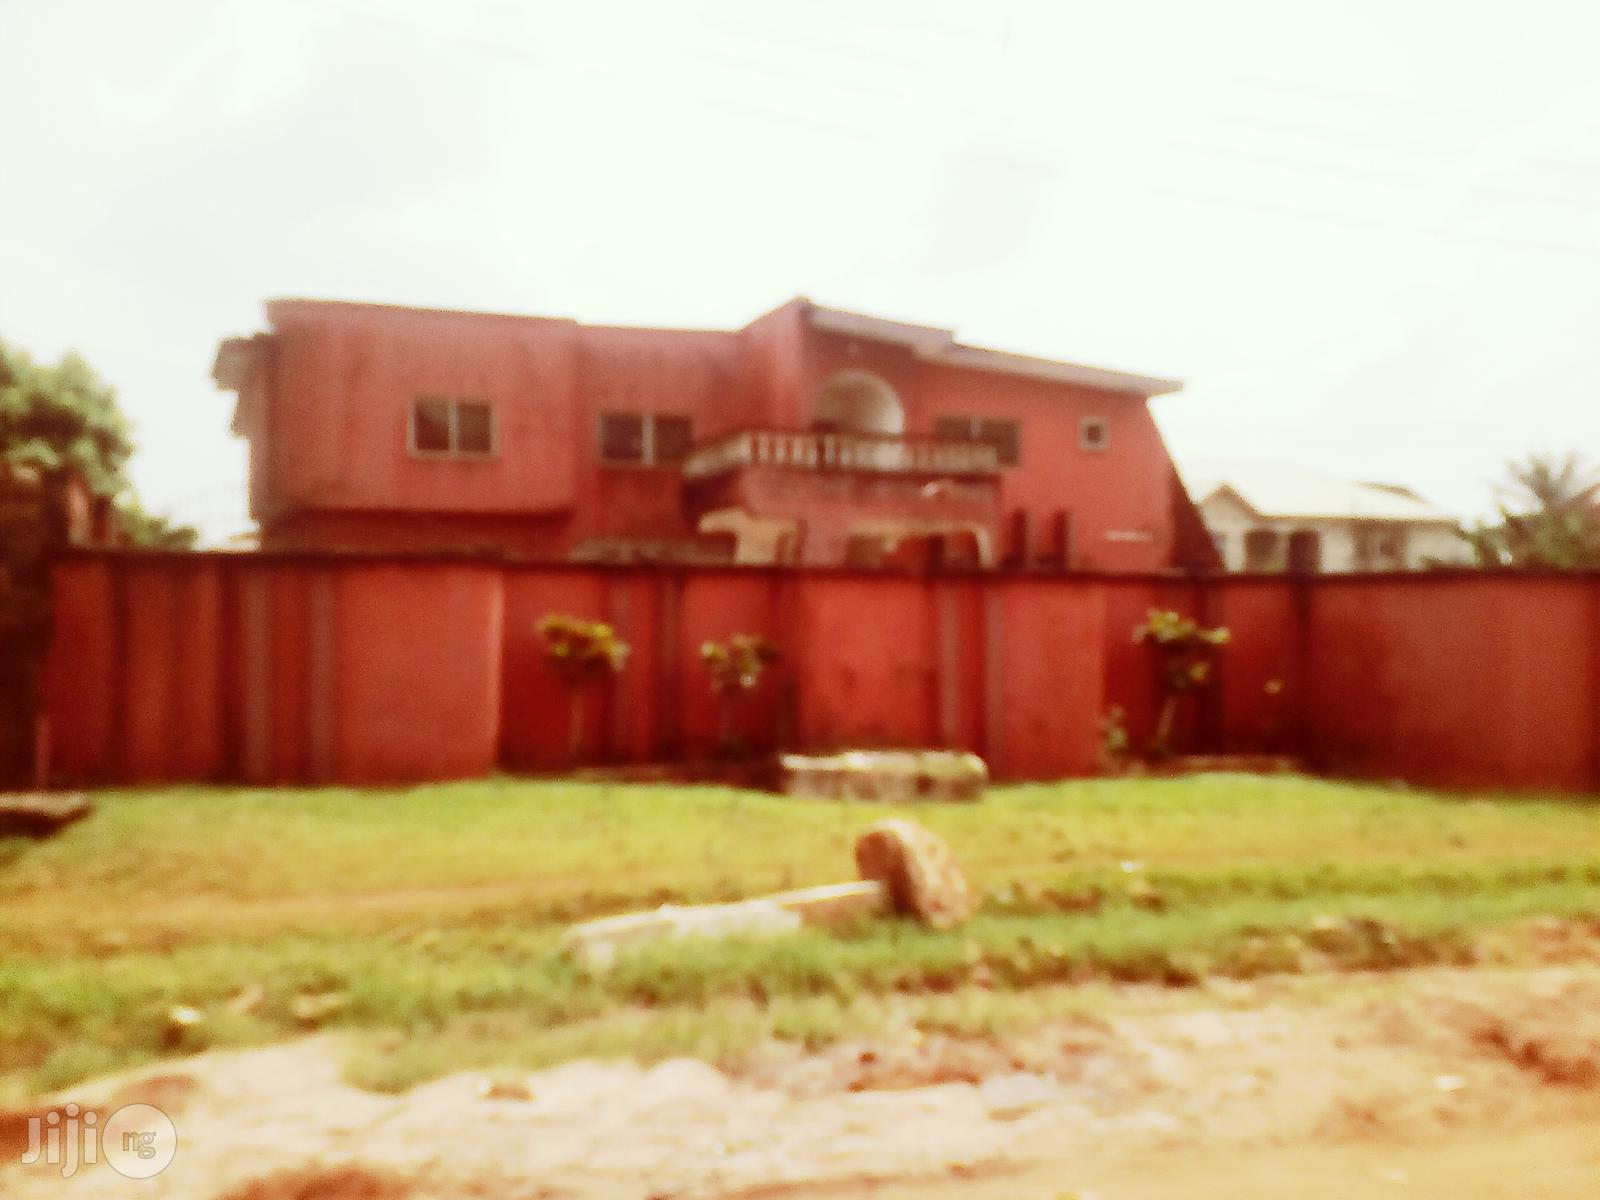 6bedrooms Duplex With 3rooms Bungalow For Sale   Houses & Apartments For Sale for sale in Benin City, Edo State, Nigeria